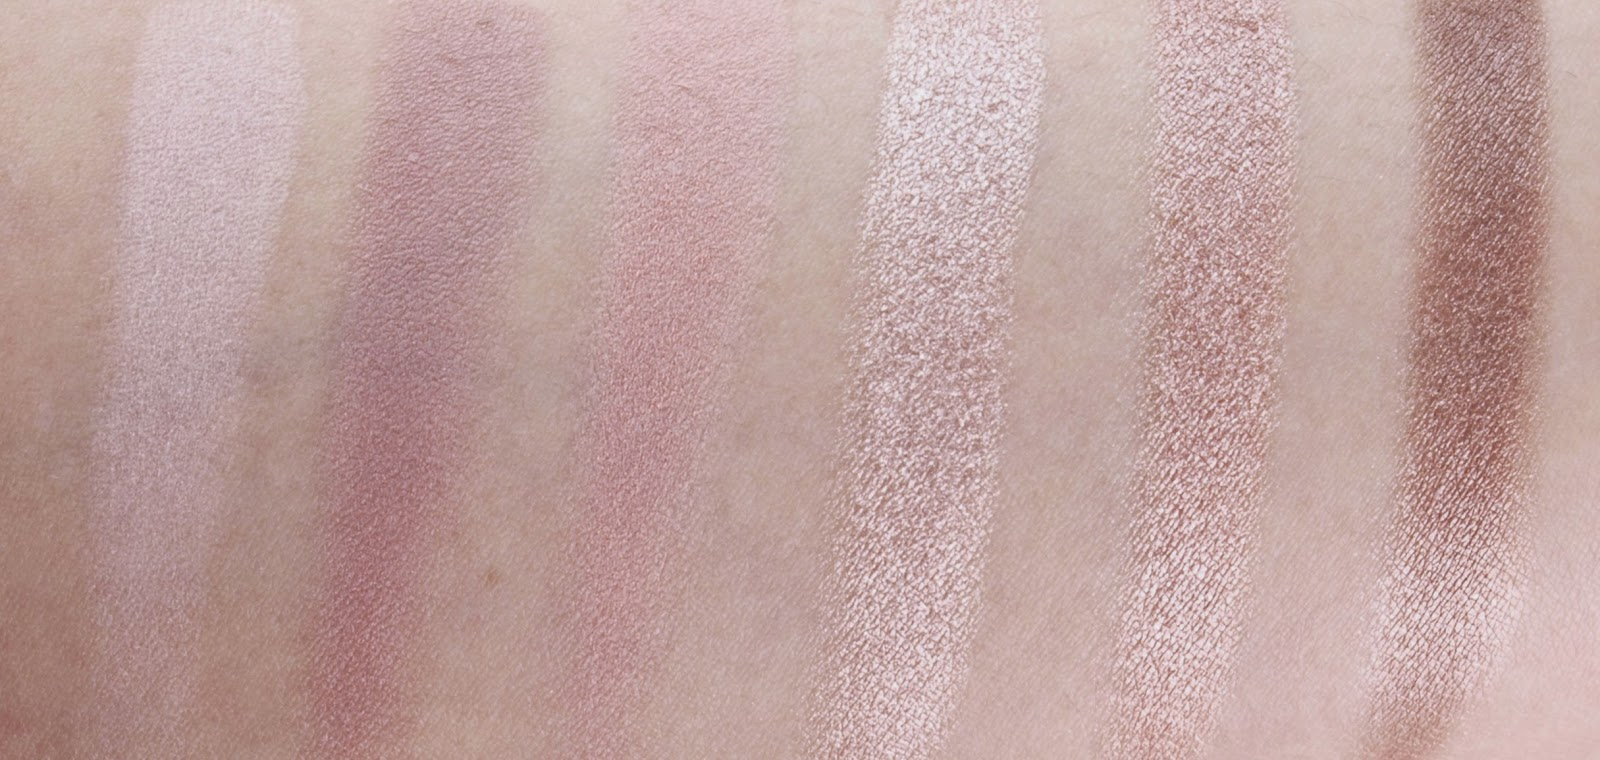 Lancome Spring 2015 My French Eyeshadow Palette: Review and Swatches